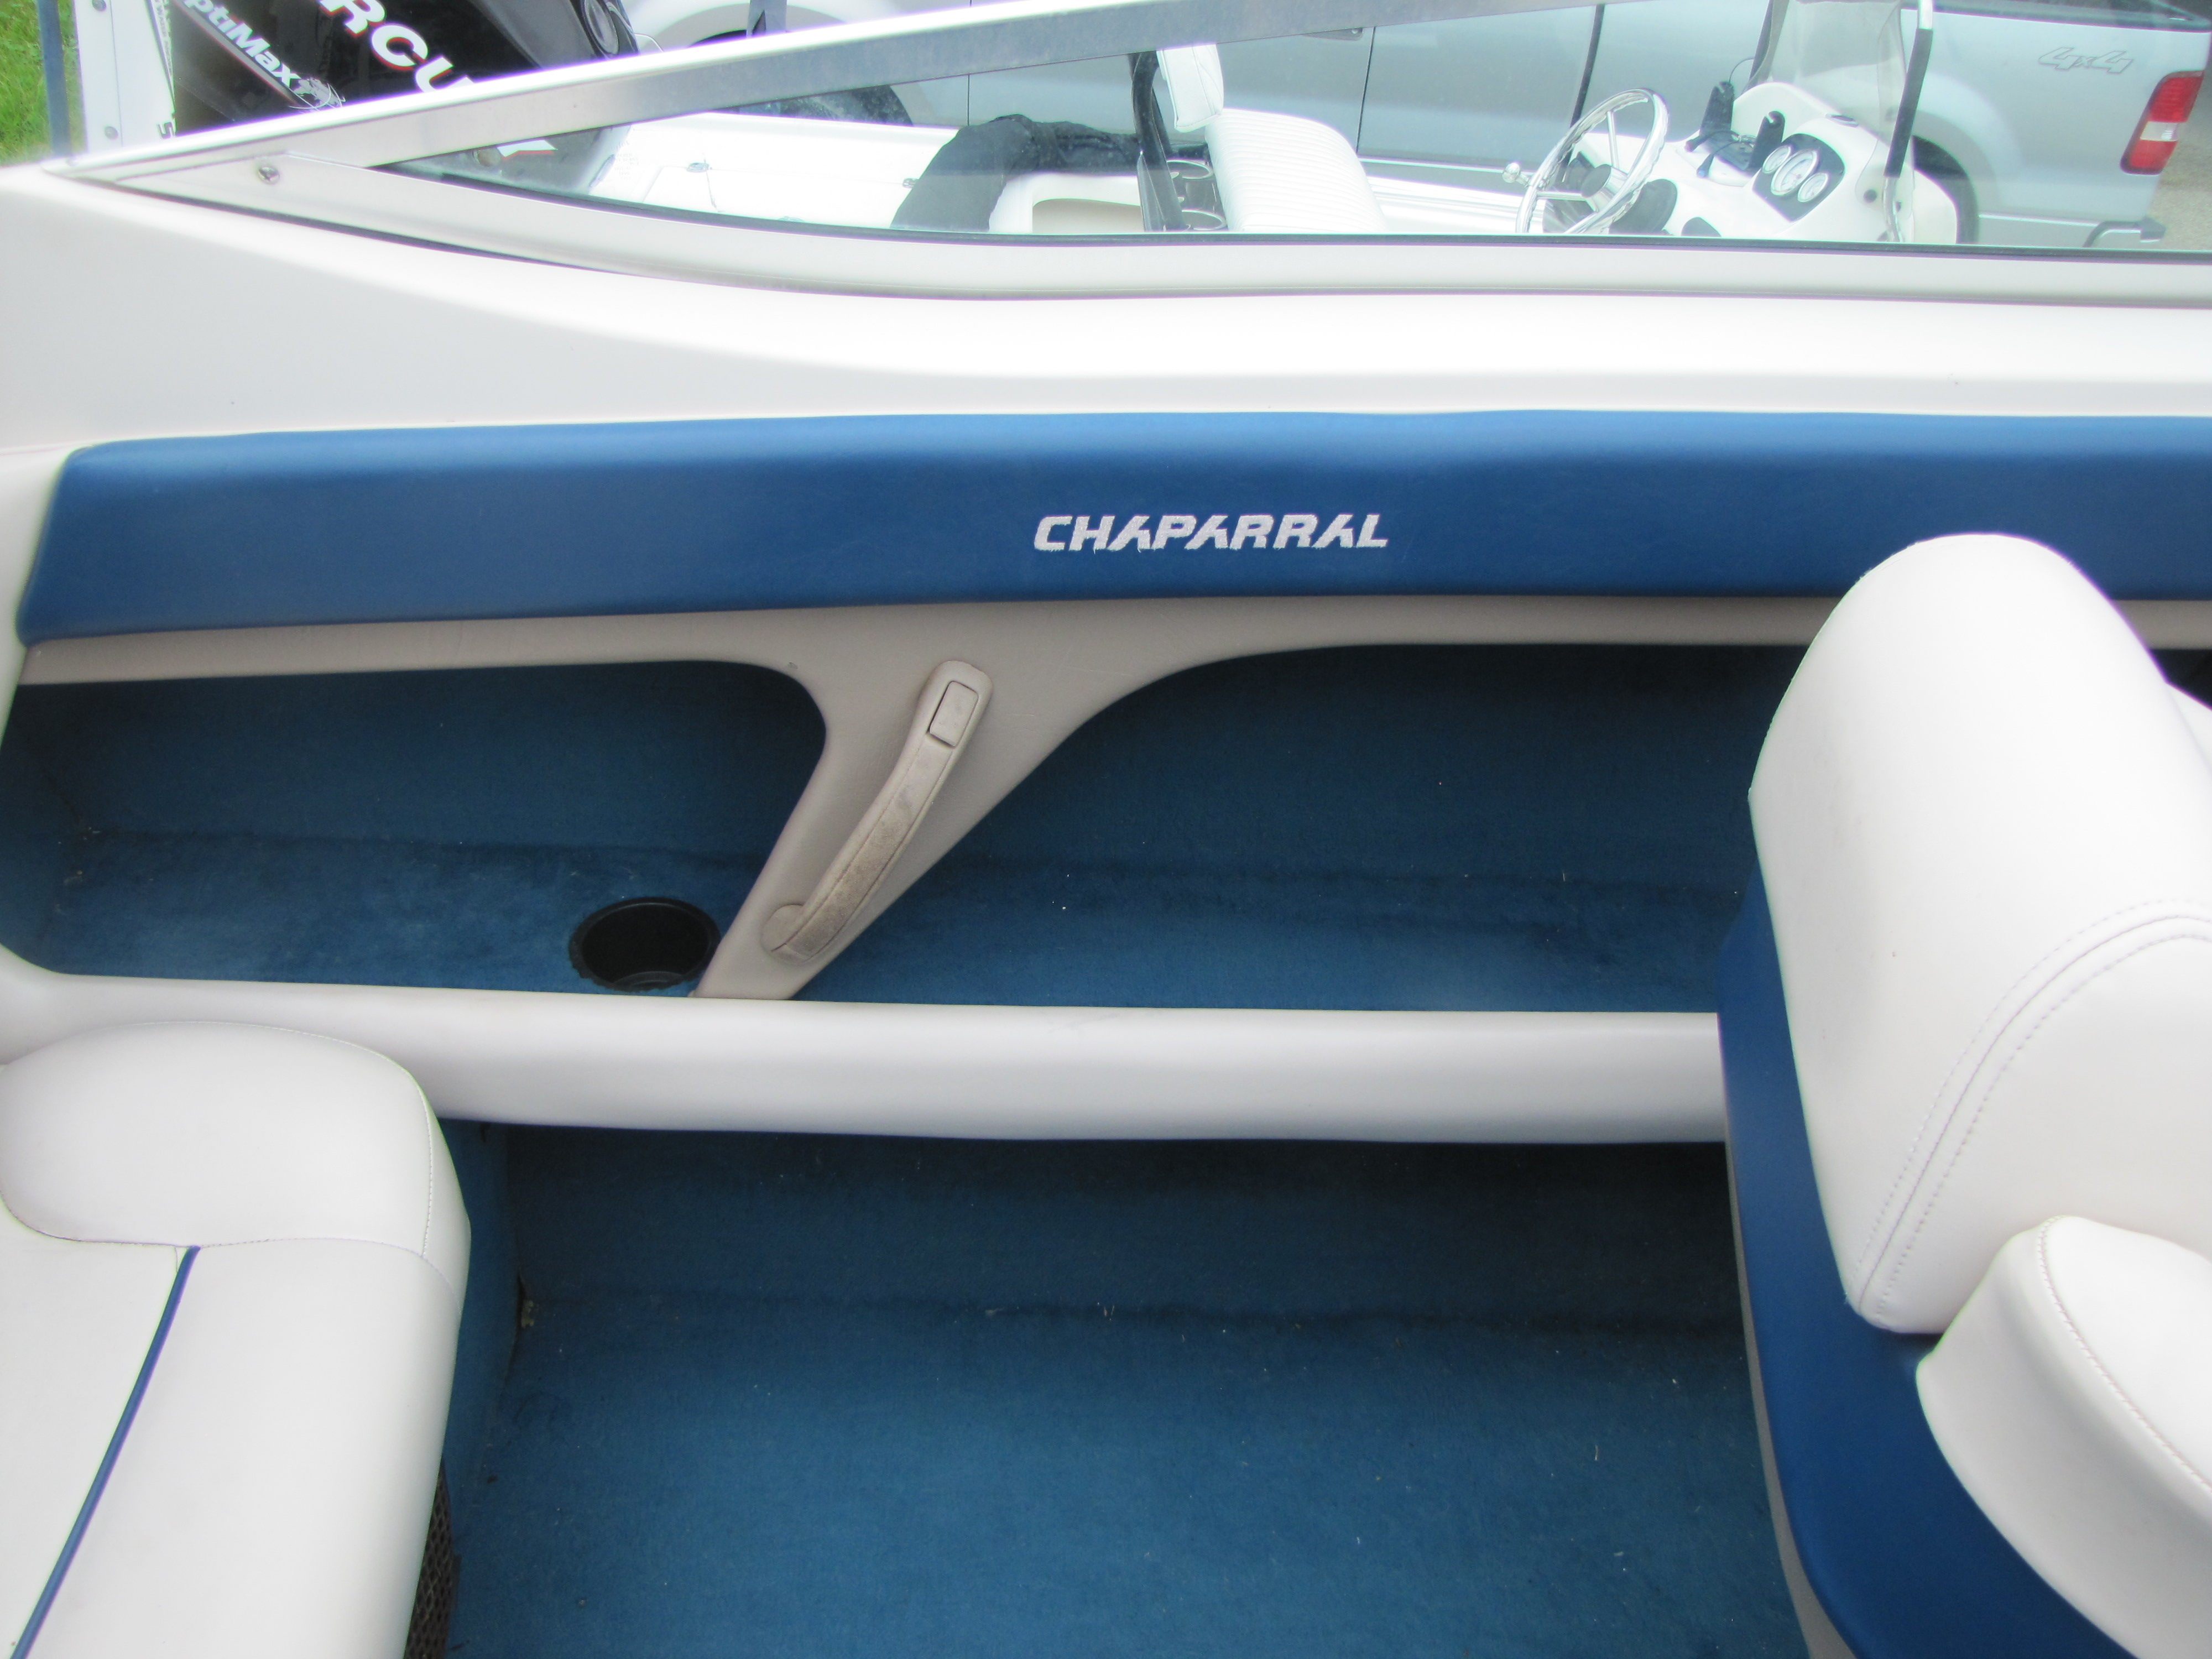 1996 Chaparral boat for sale, model of the boat is 2330 & Image # 12 of 14